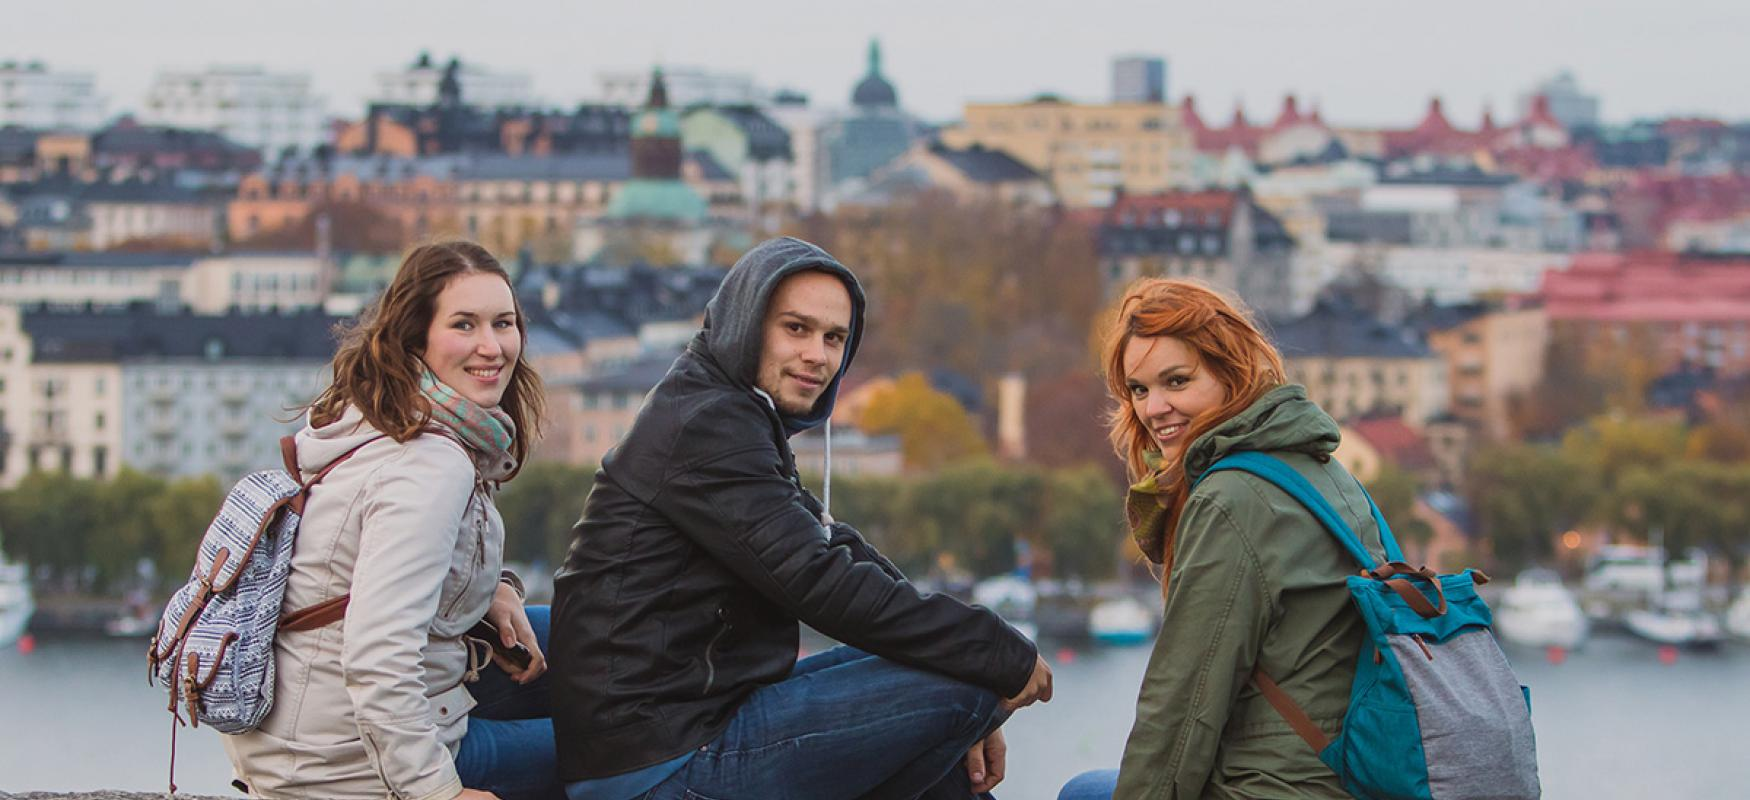 Young people hanging out on a rock with Stockholm in the background.